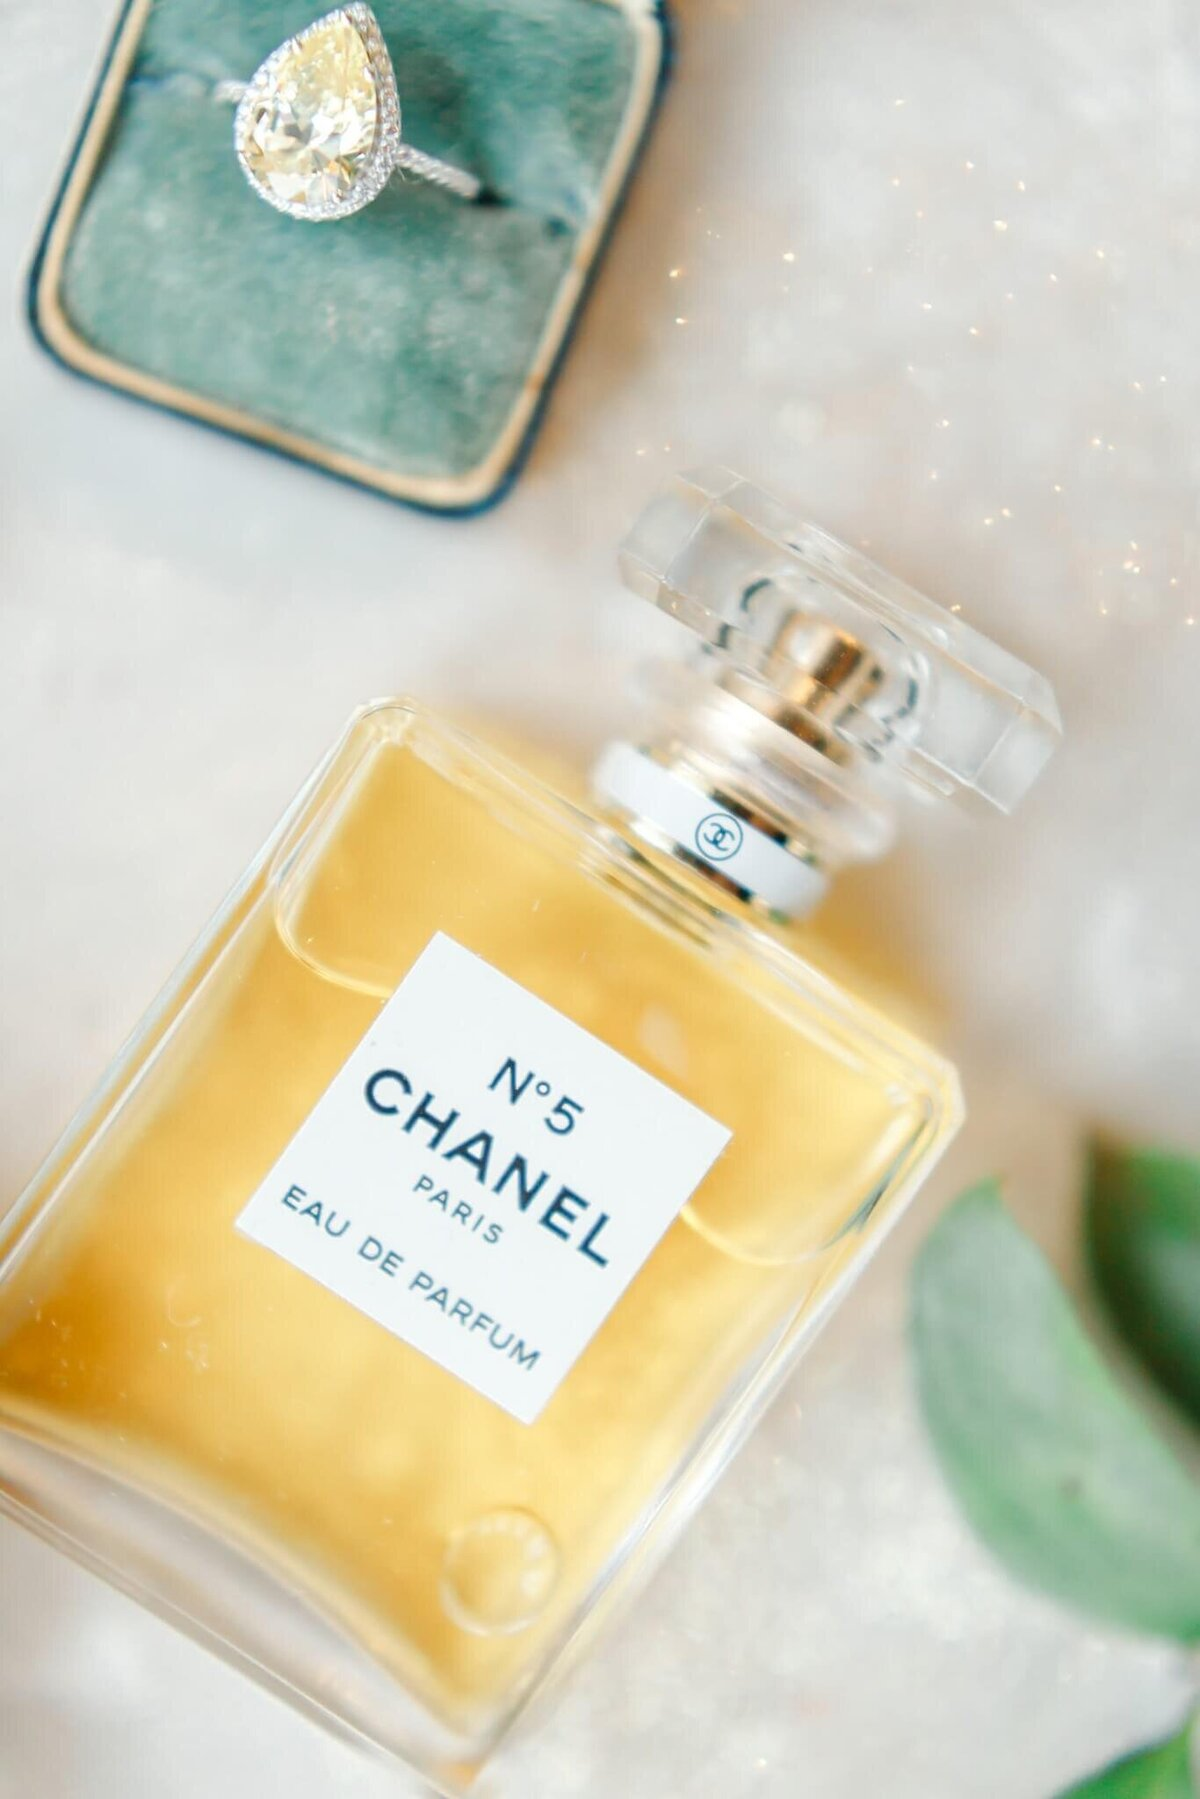 Chanel perfume wedding